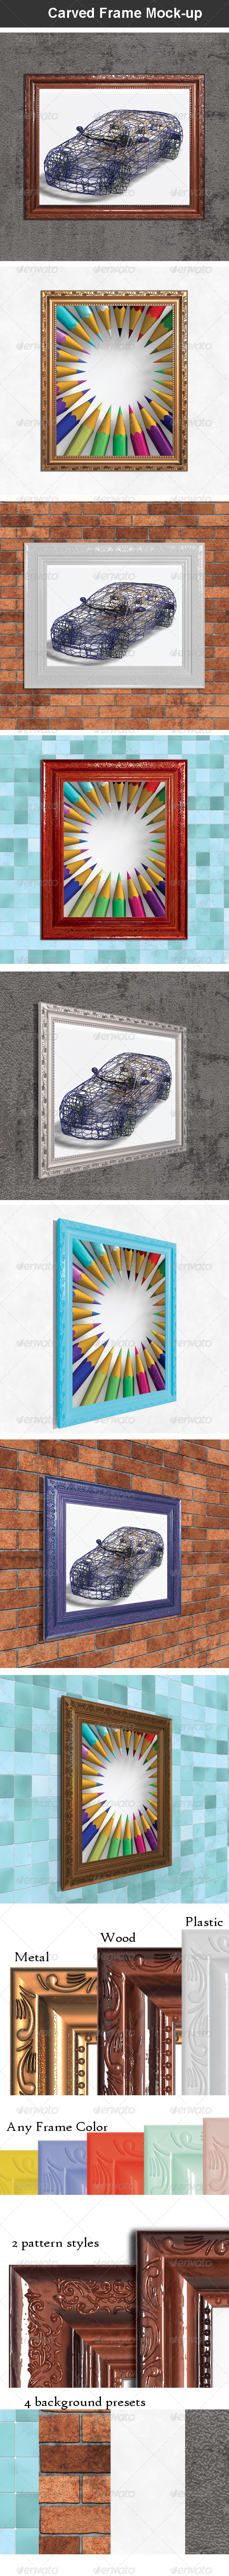 GraphicRiver Carved Frame Mock-up 6889648